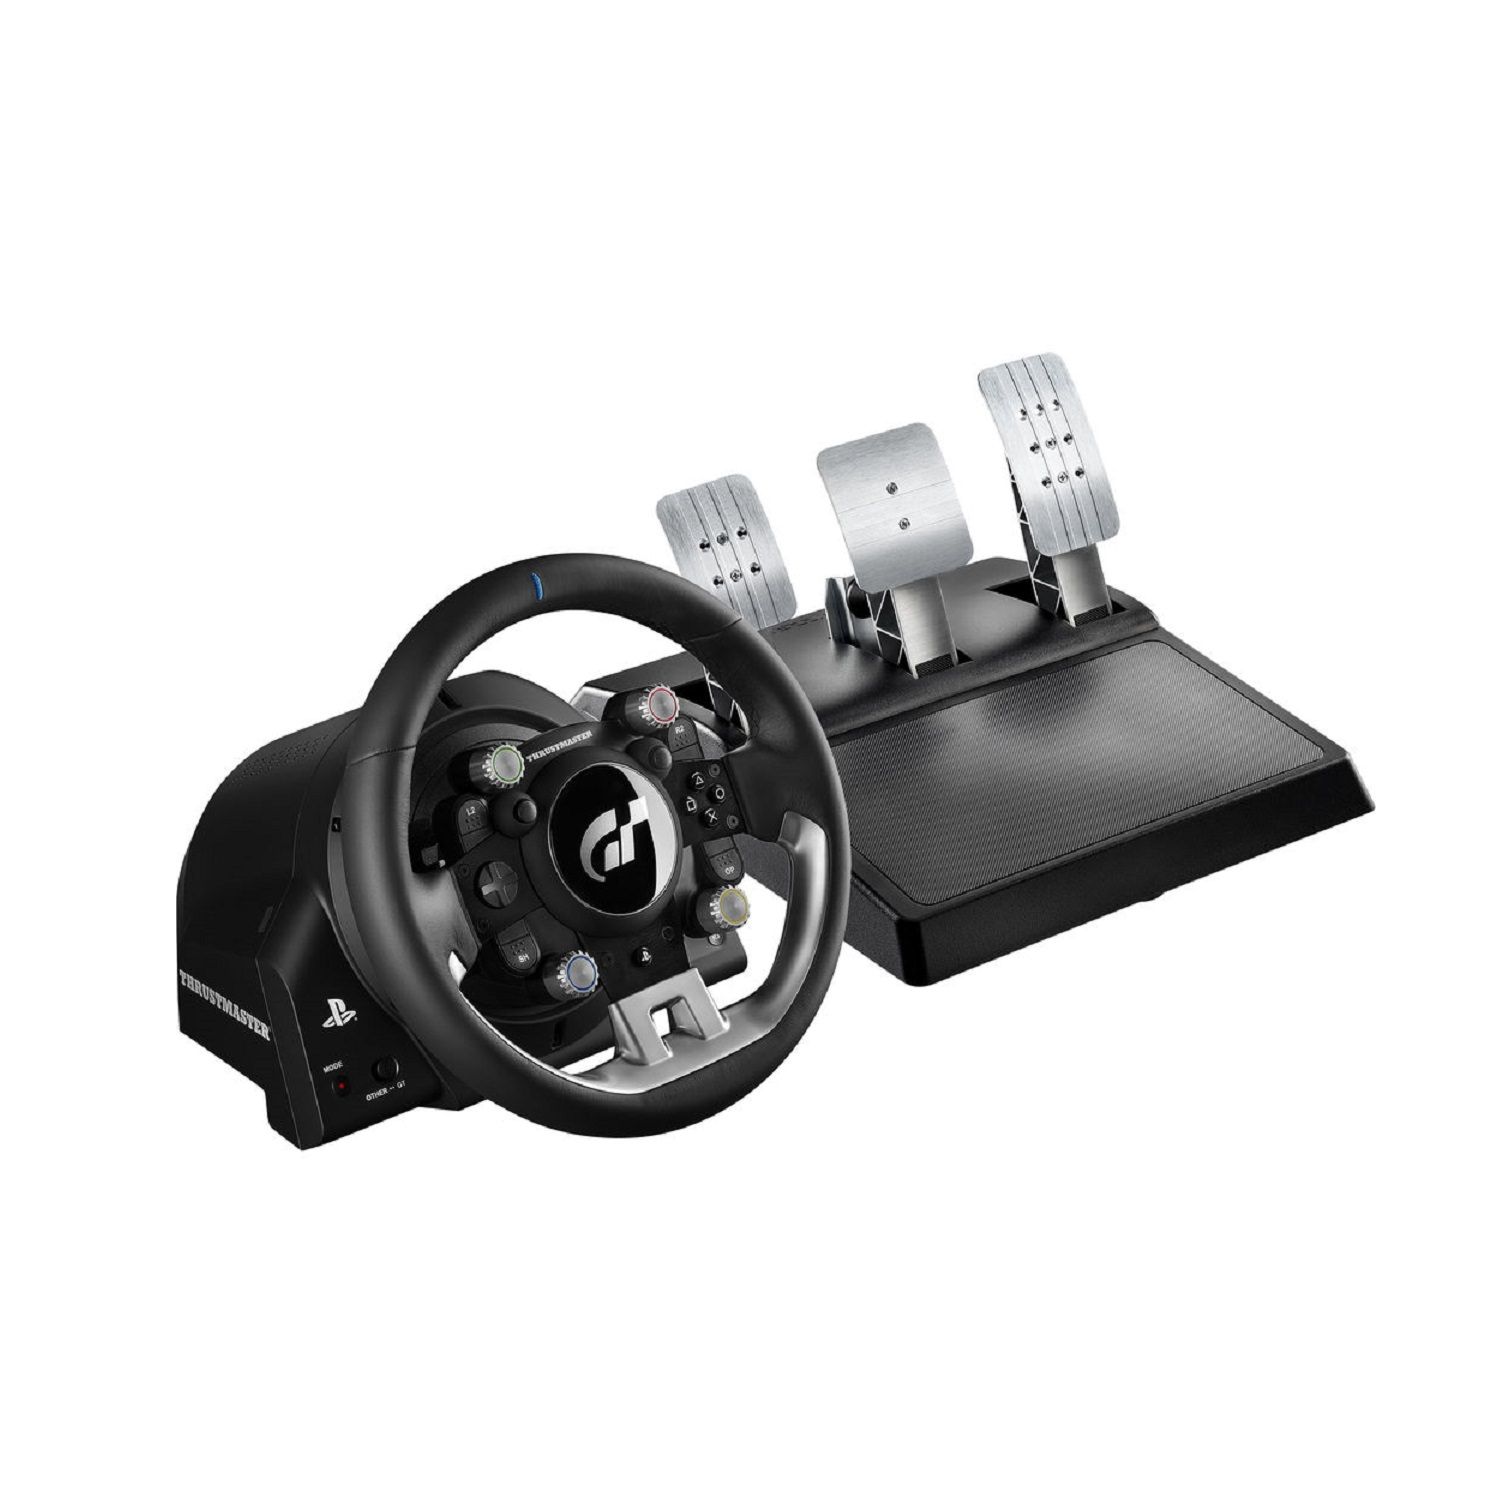 Thrustmaster Playstation 4 PC T-GT Racing Wheel, 4169087 by Thrustmaster